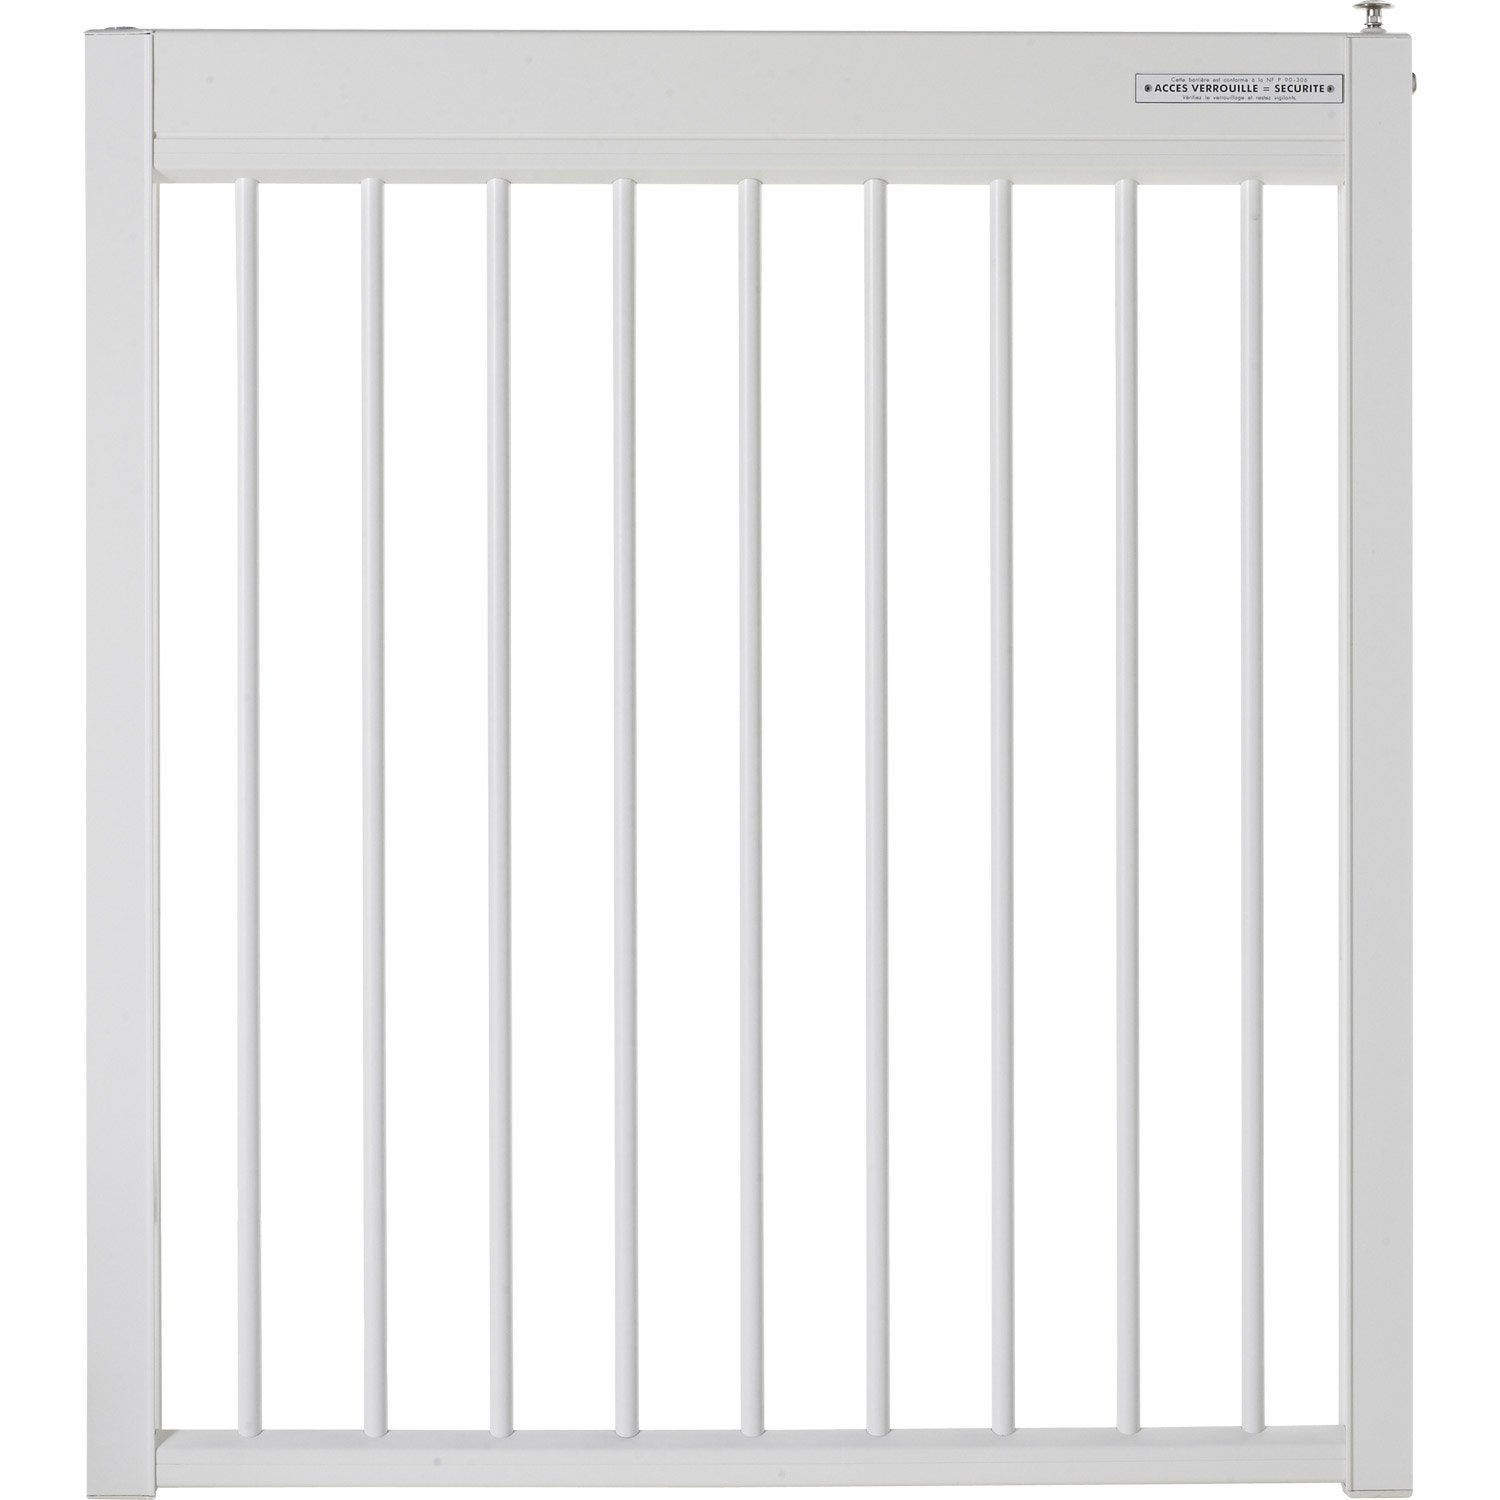 Portillon pour piscine aluminium issambres blanc 9010 h for Portillon pour piscine